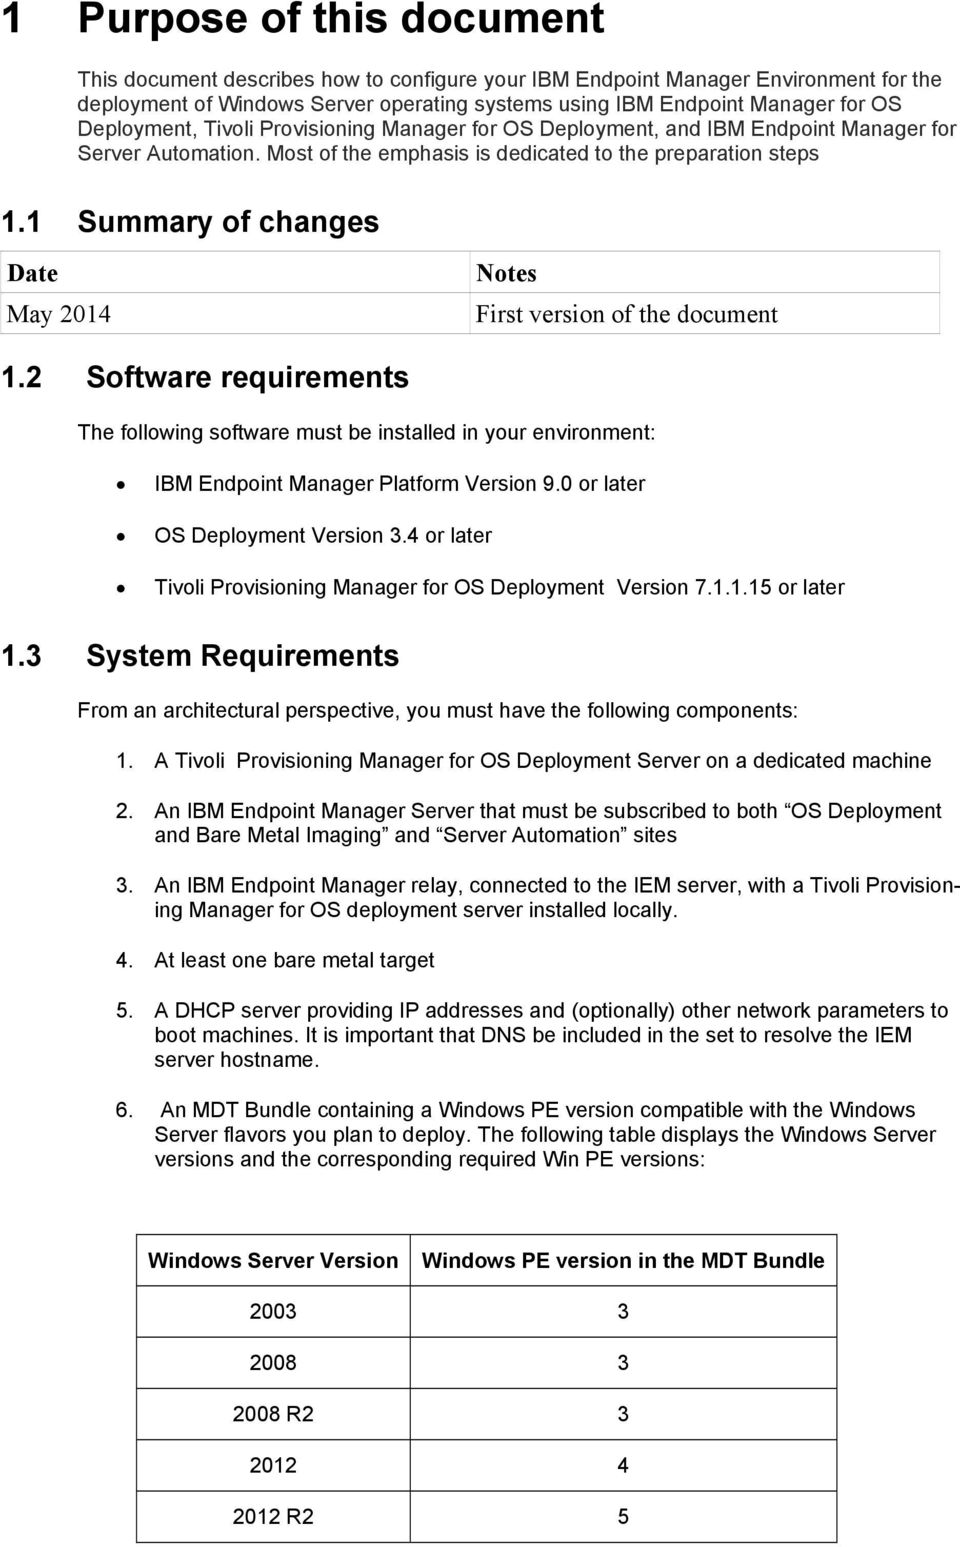 1 Summary of changes Date May 2014 Notes First version of the document 1.2 Software requirements The following software must be installed in your environment: IBM Endpoint Manager Platform Version 9.